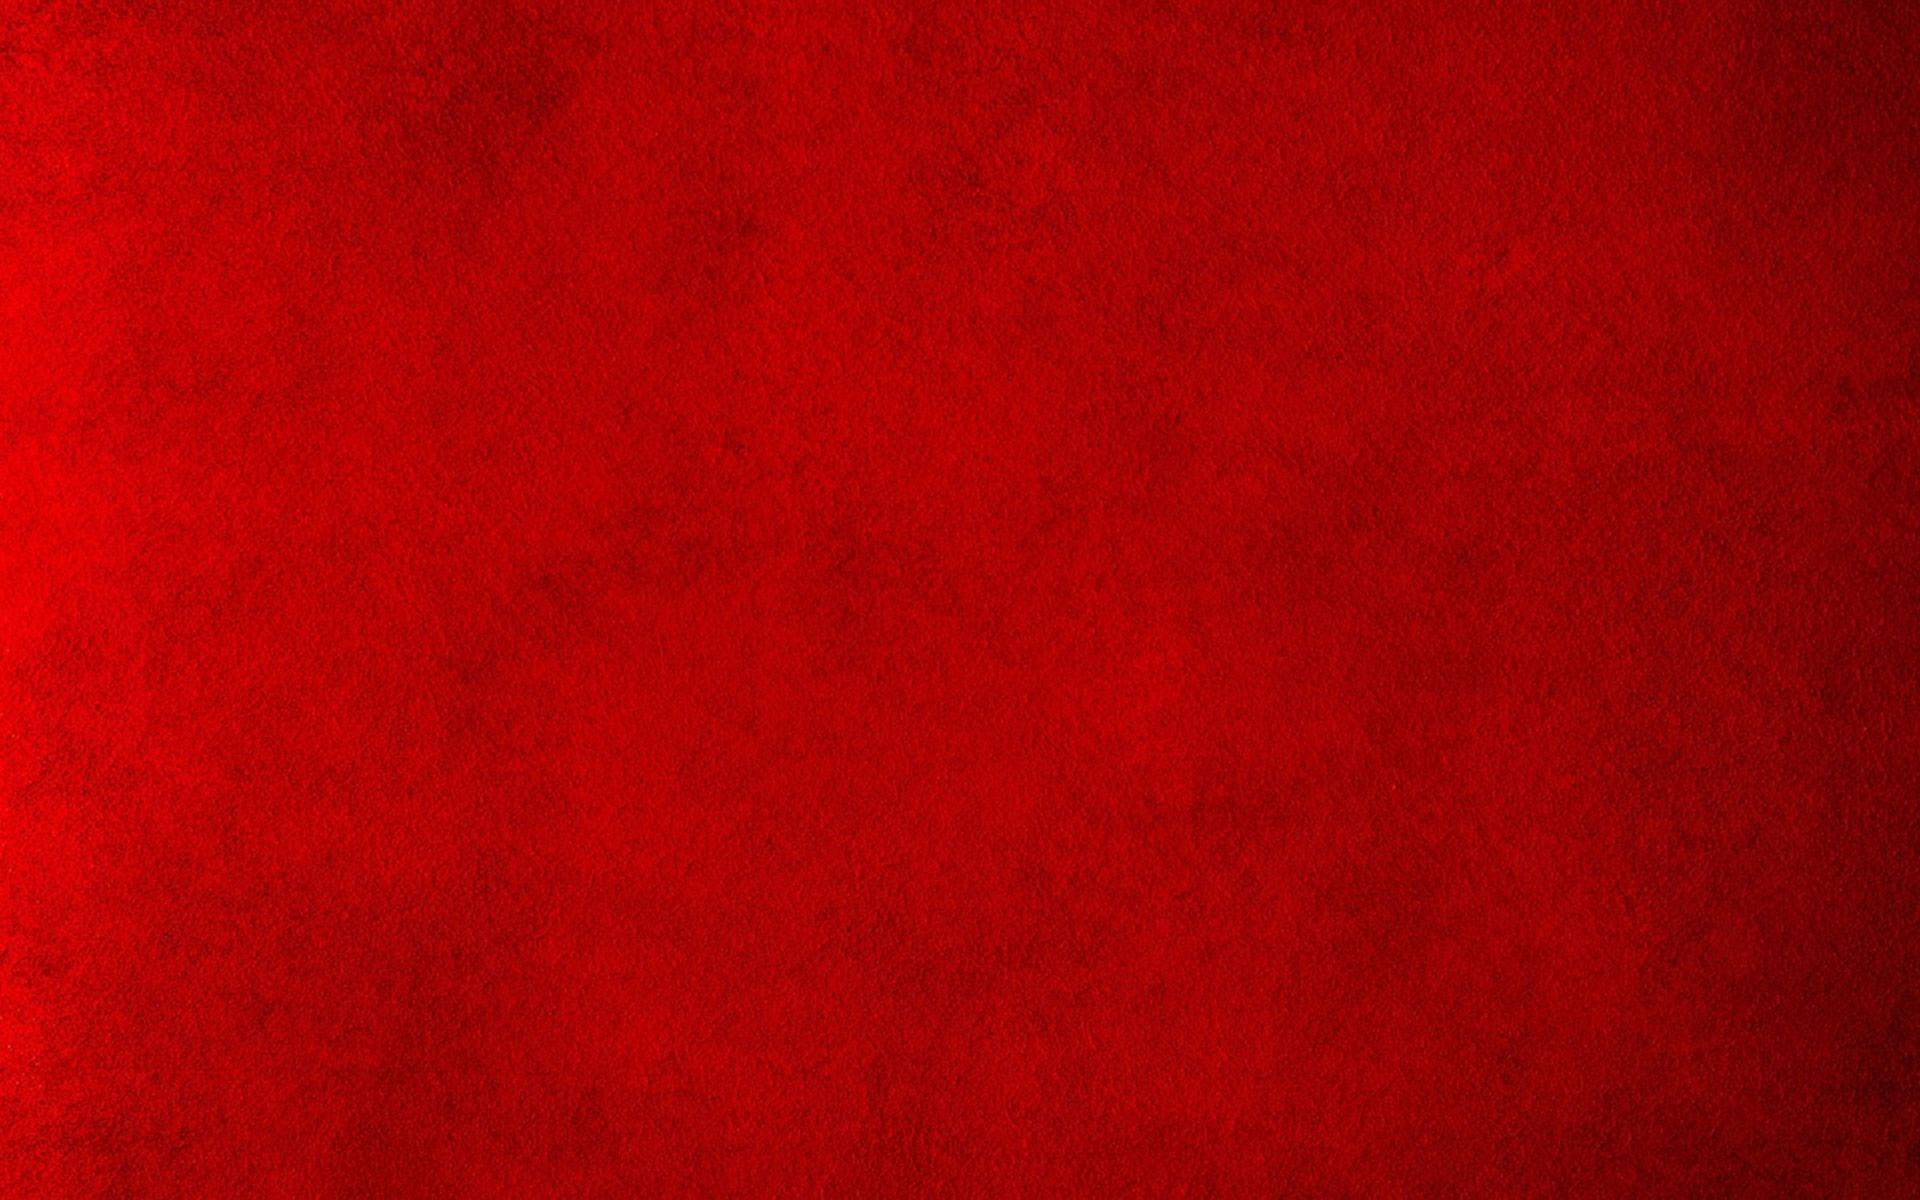 30 HD Red Wallpapers 1920x1200